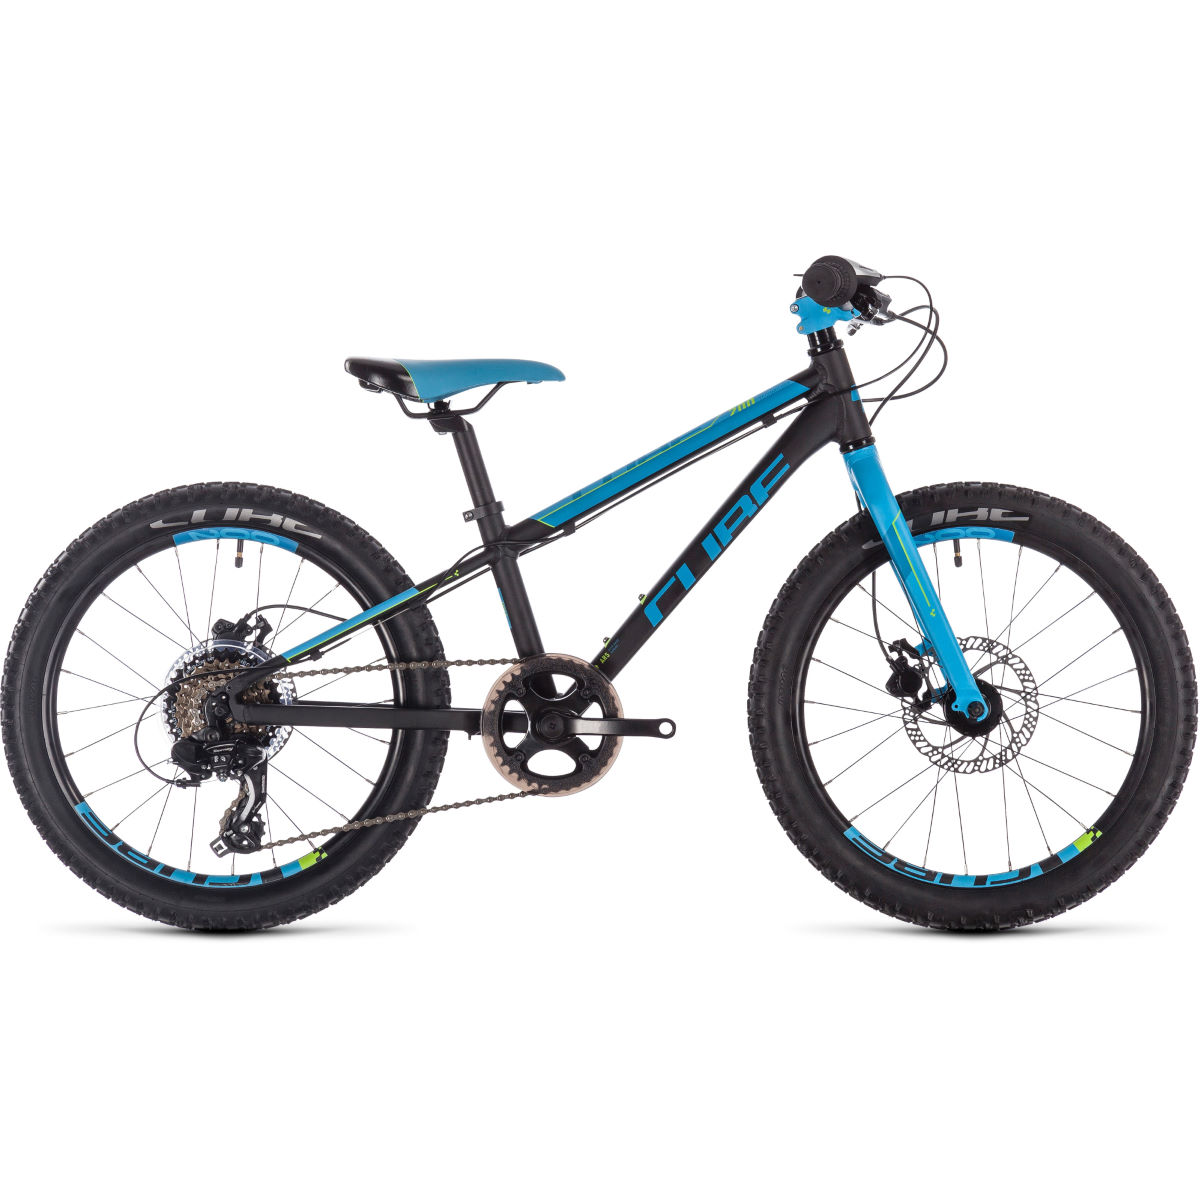 Cube Acid 200 Girls Bike (2019)   Junior Bikes